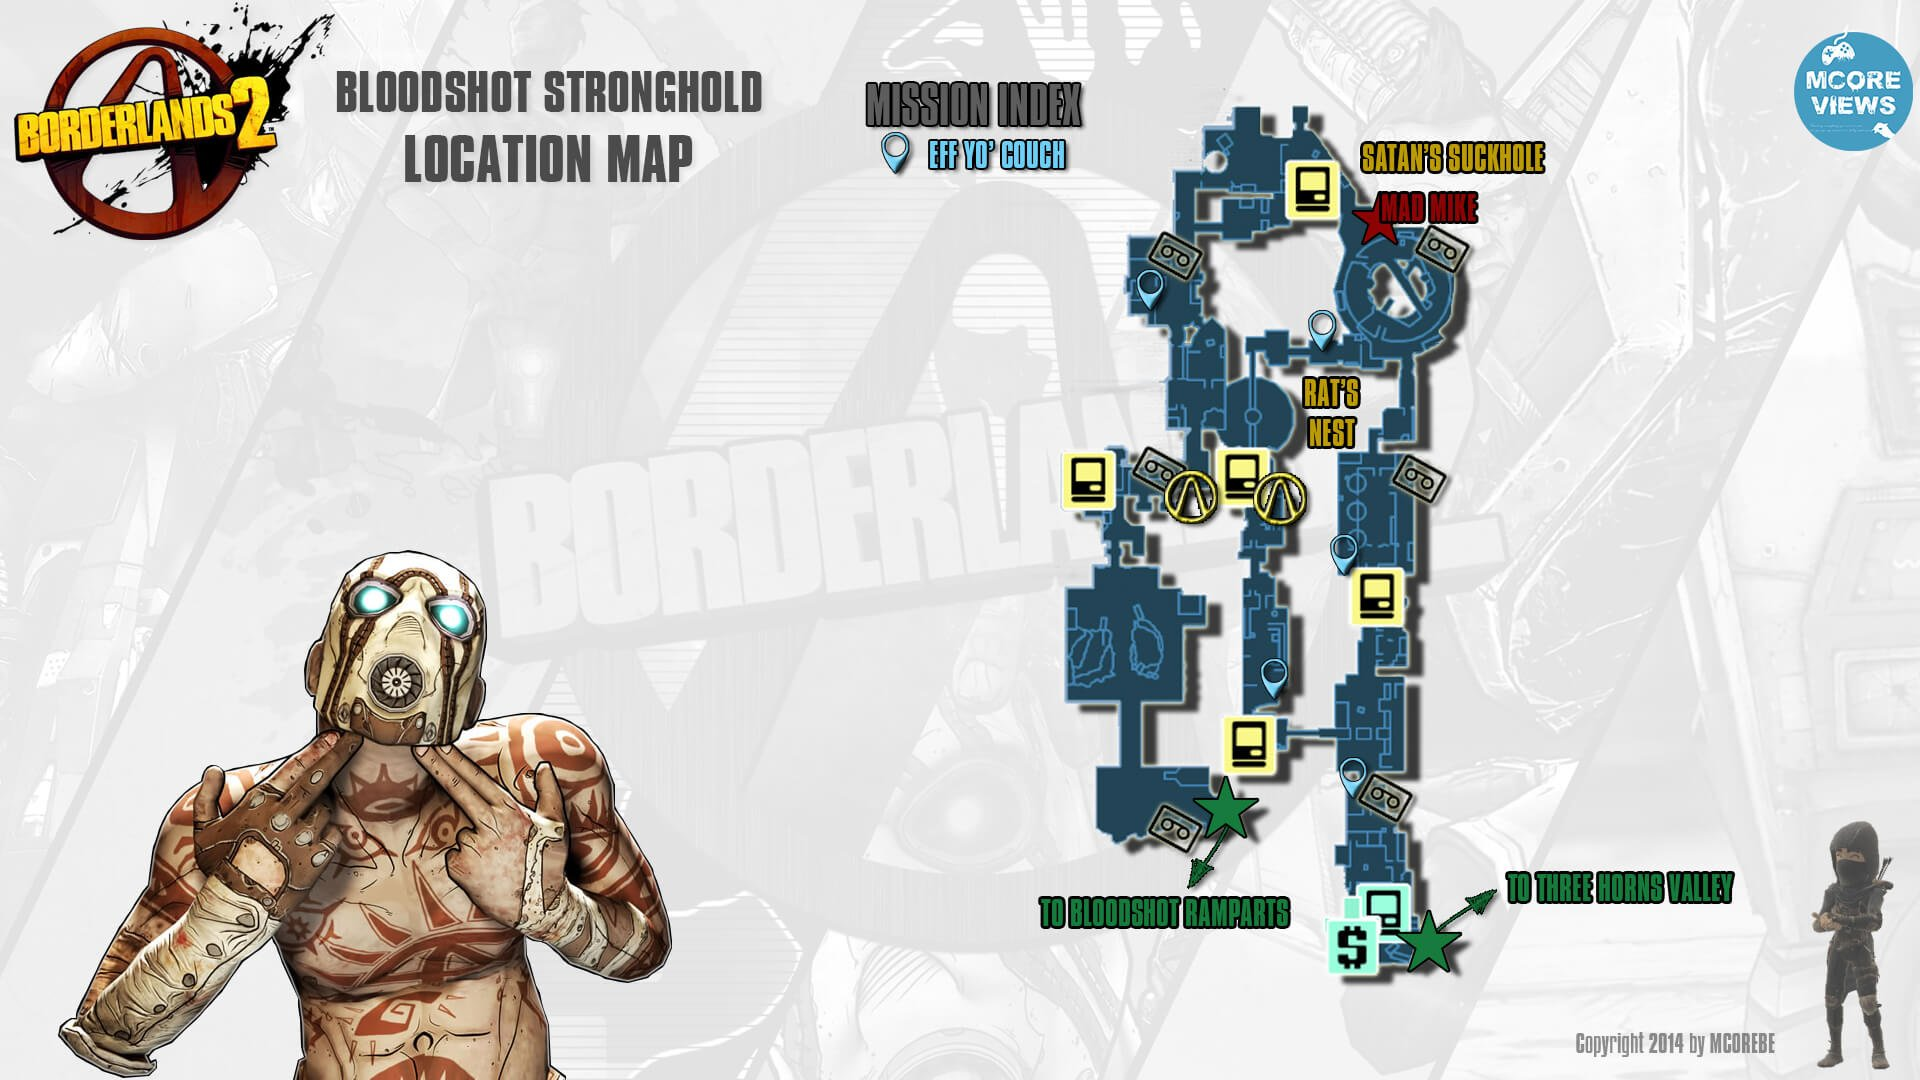 Bloodshot Stronghold Map for Borderlands 2 - IGN